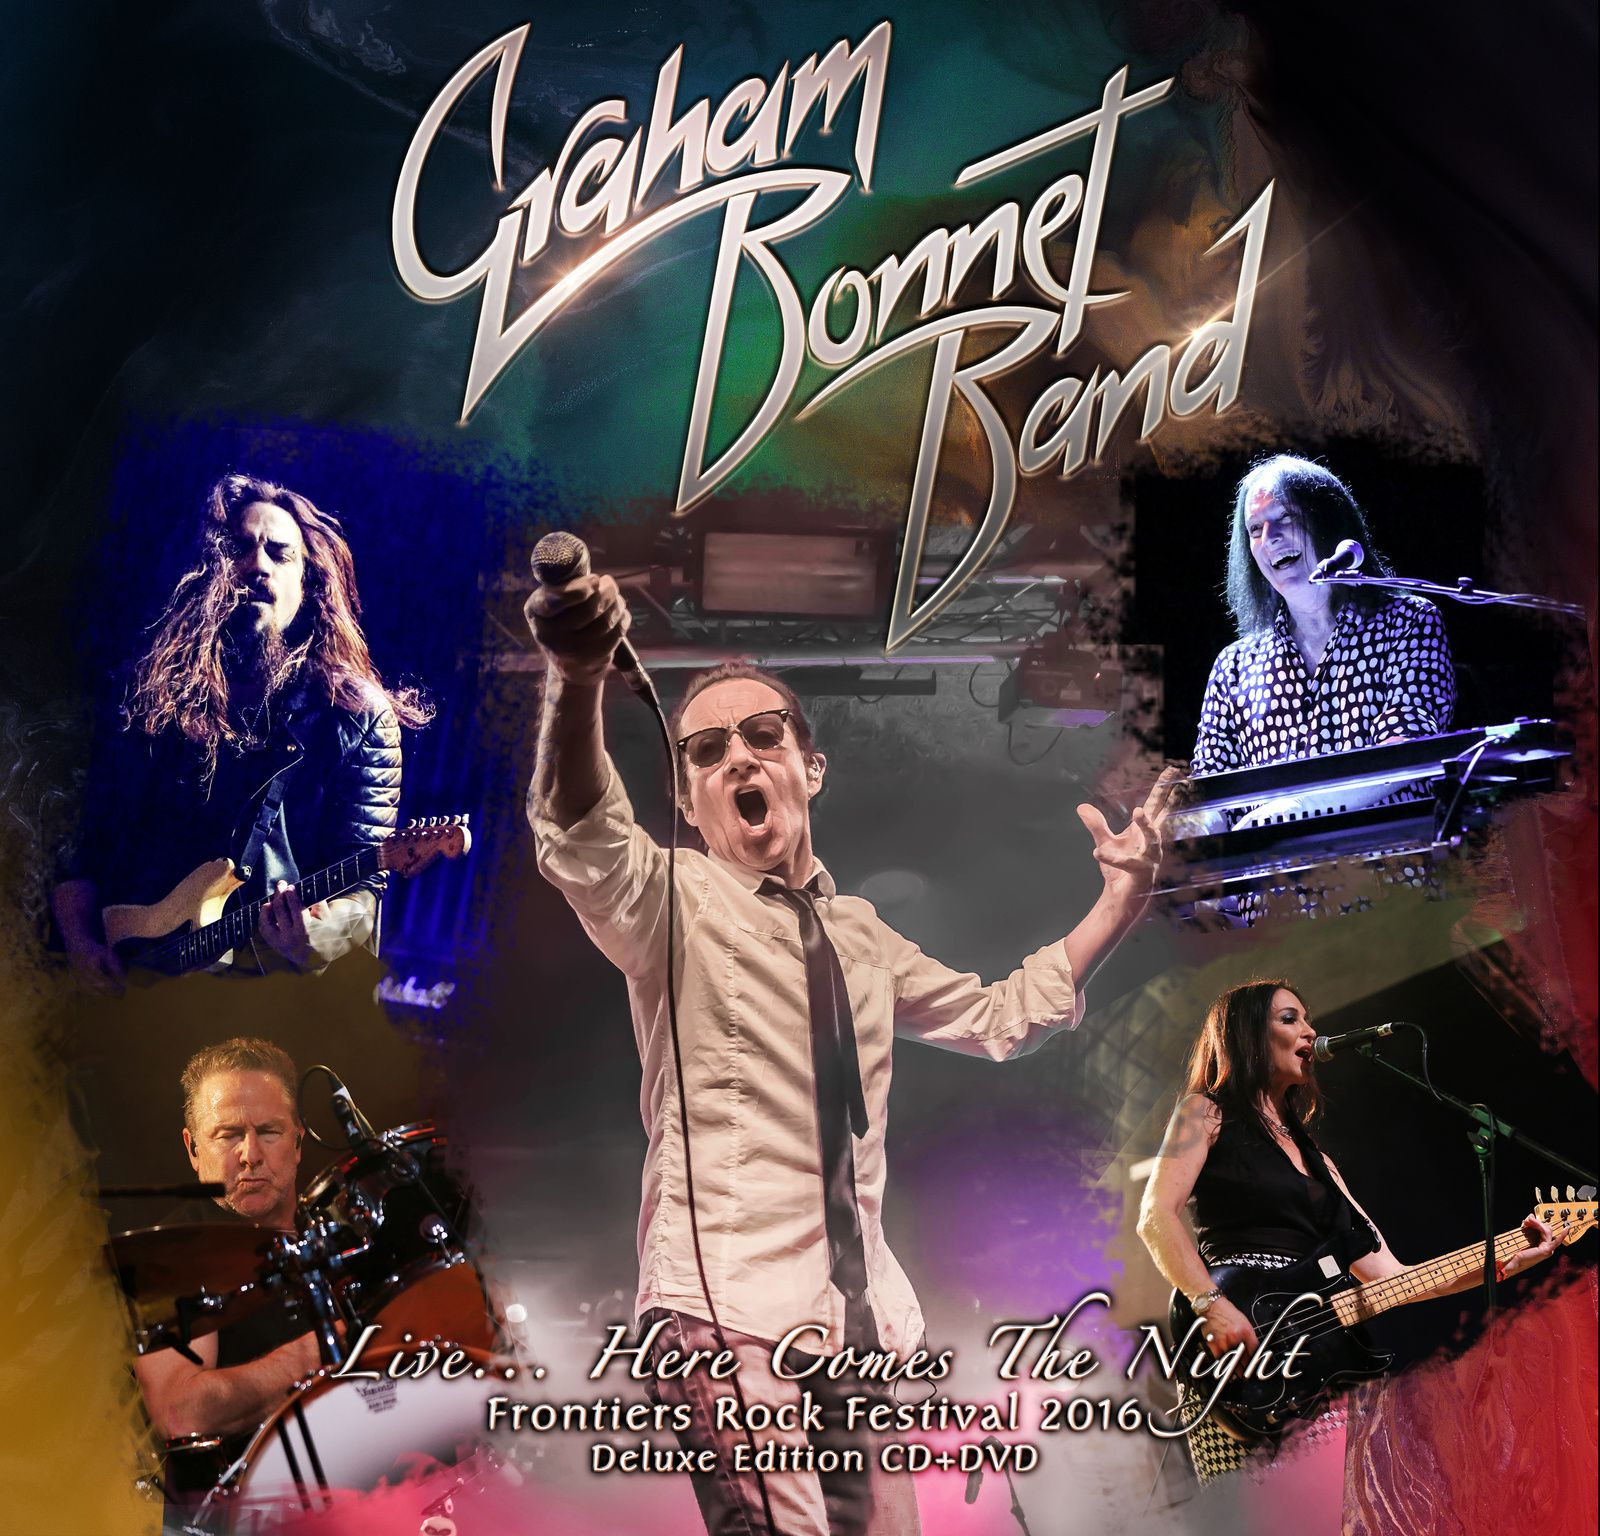 CD review GRAHAM BONNET BAND &quot&#x3B;Live...Here comes the Night&quot&#x3B;